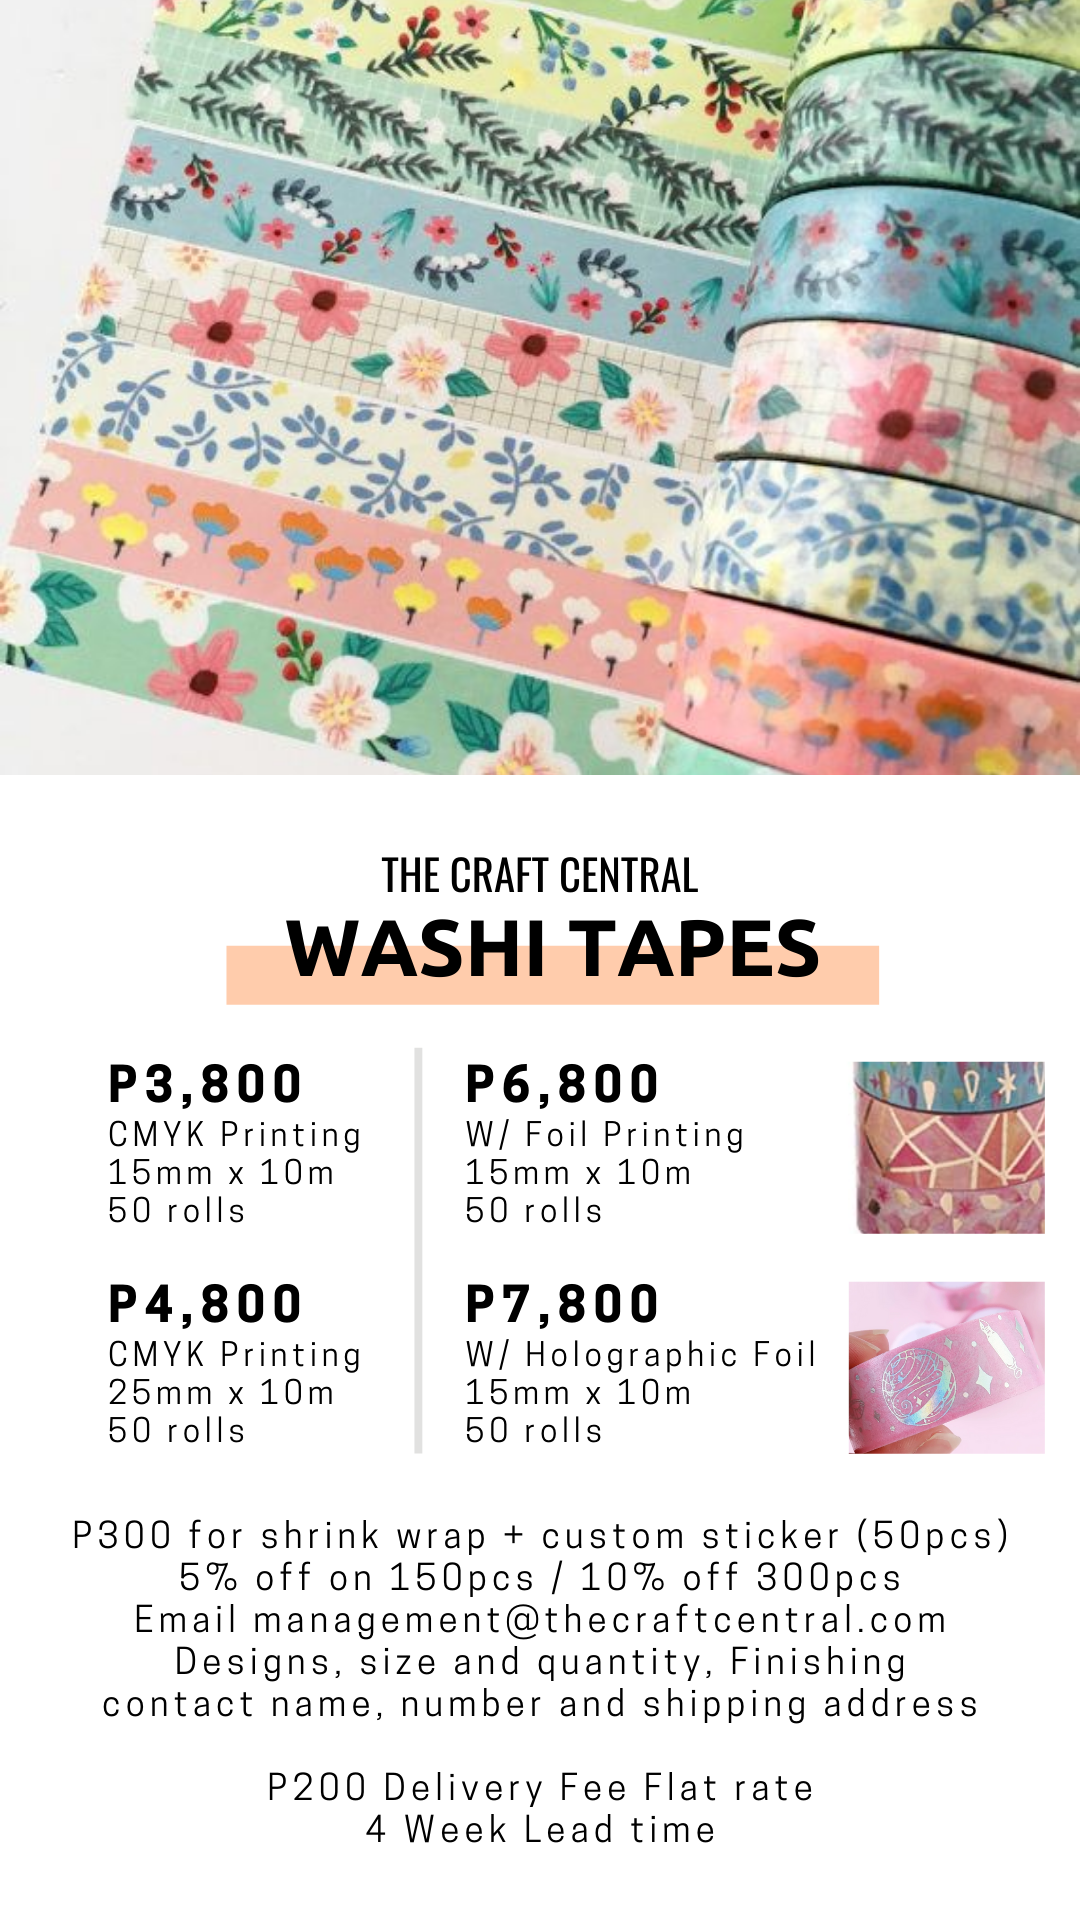 washi tape prices